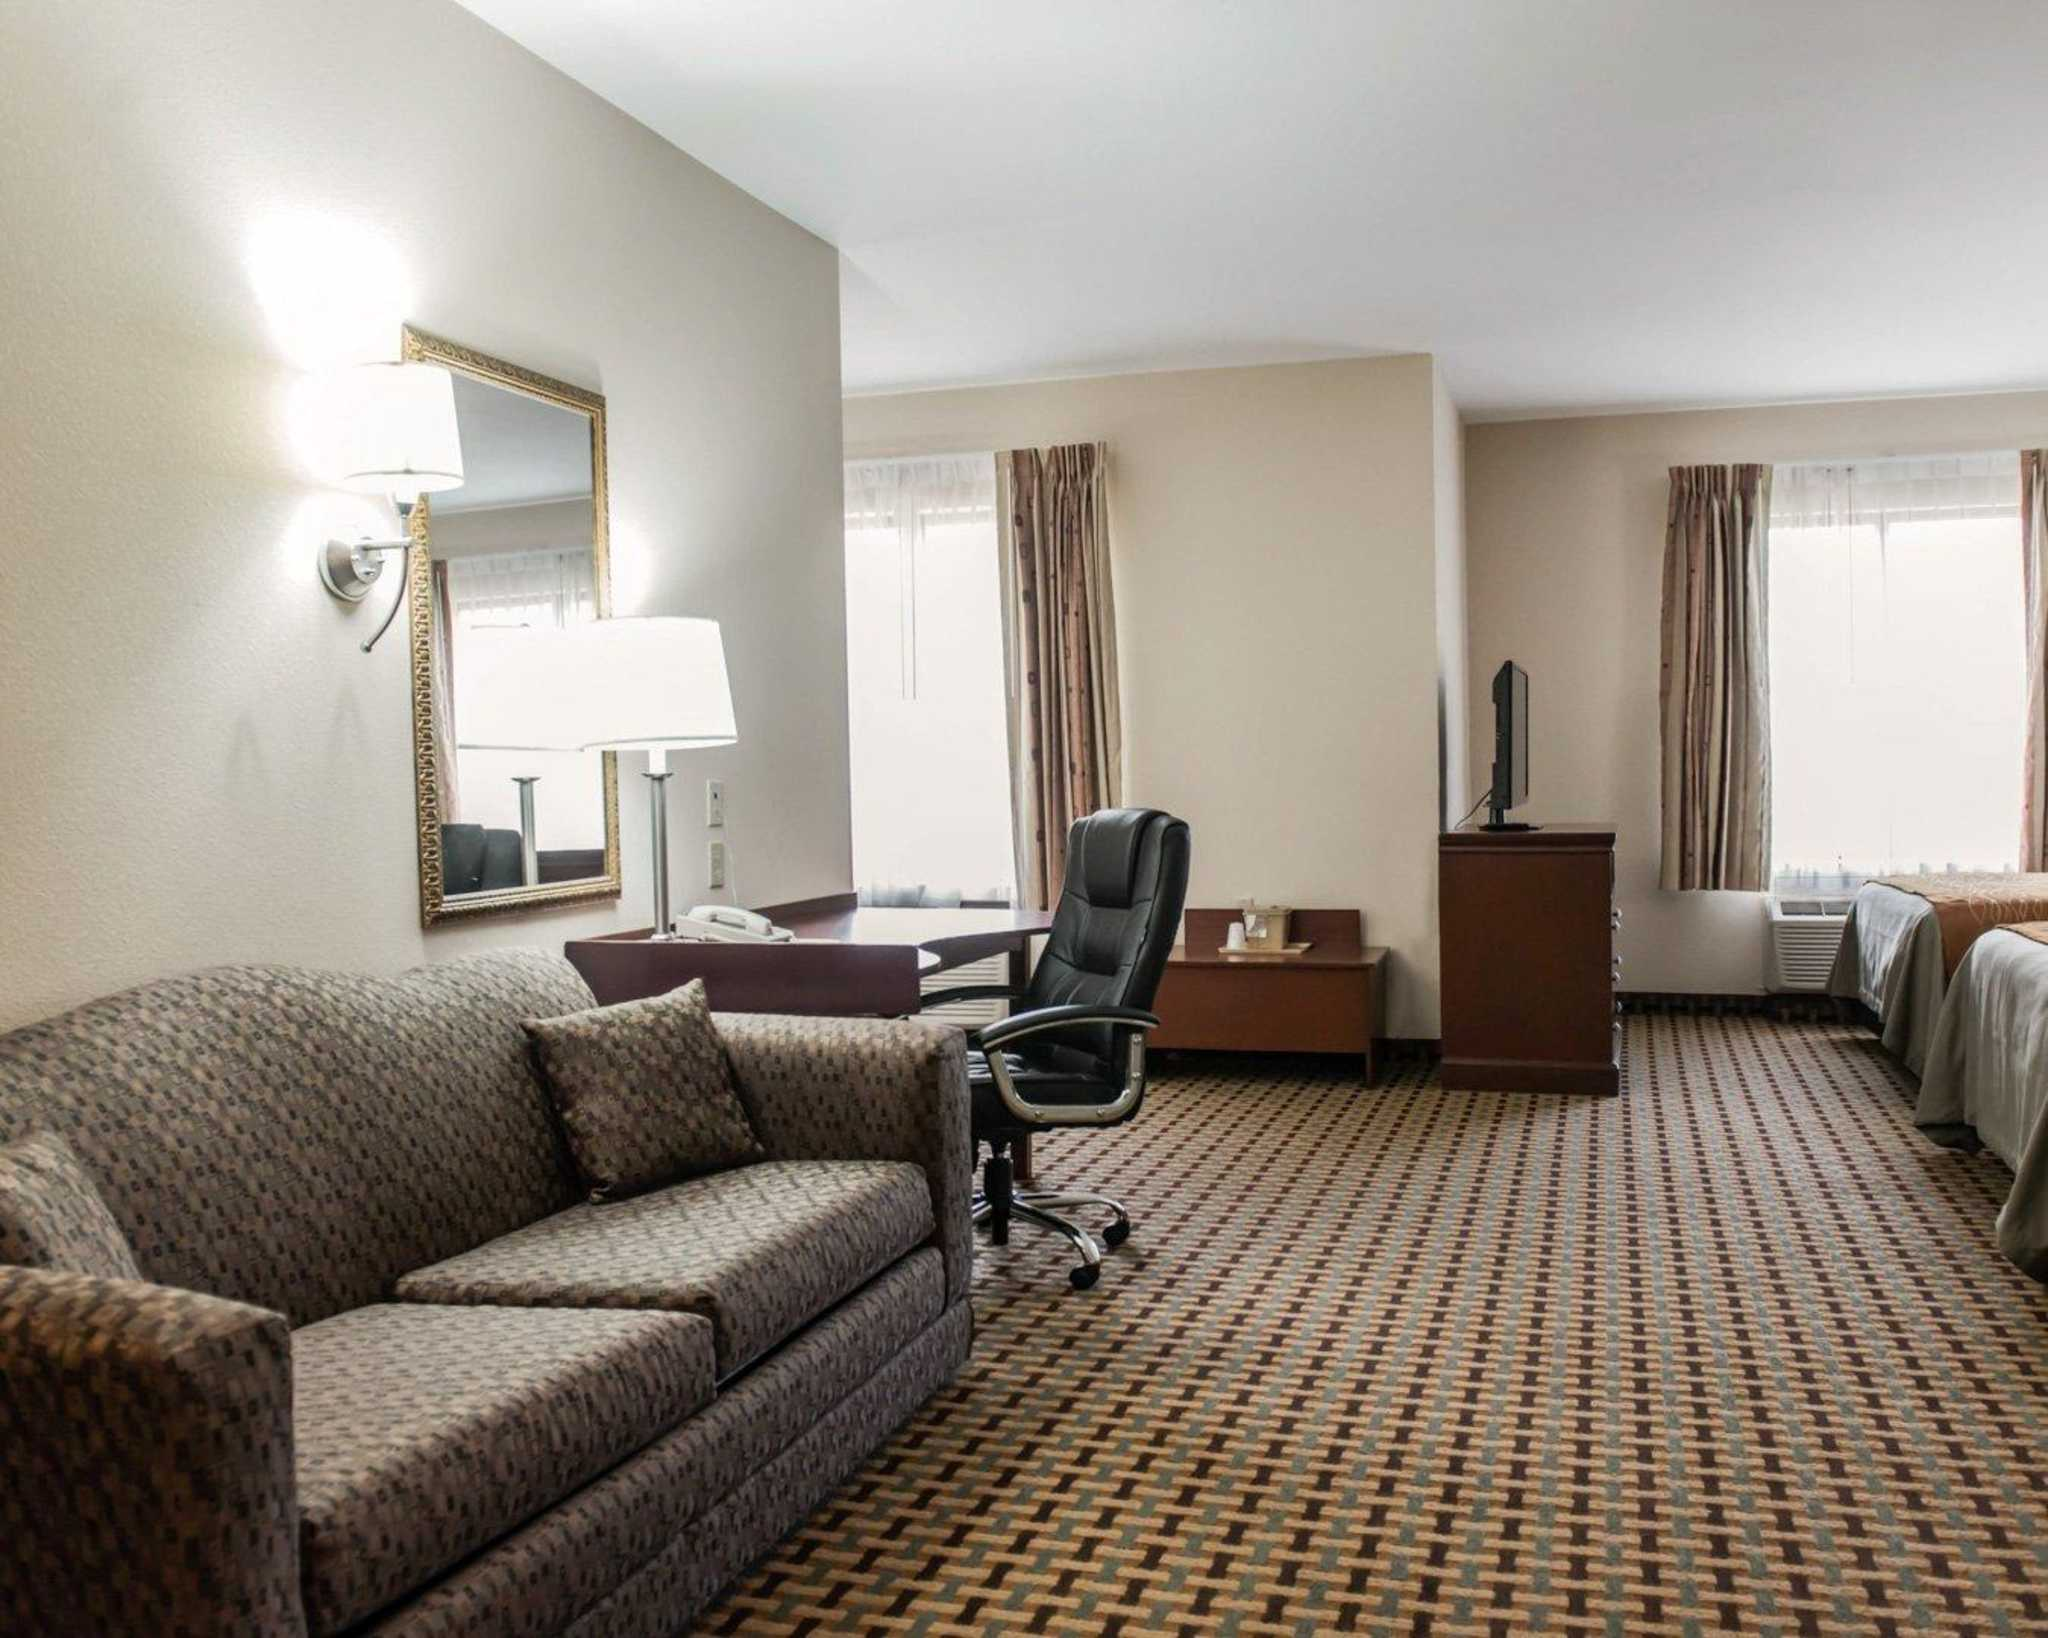 Comfort Inn & Suites Midway - Tallahassee West image 30